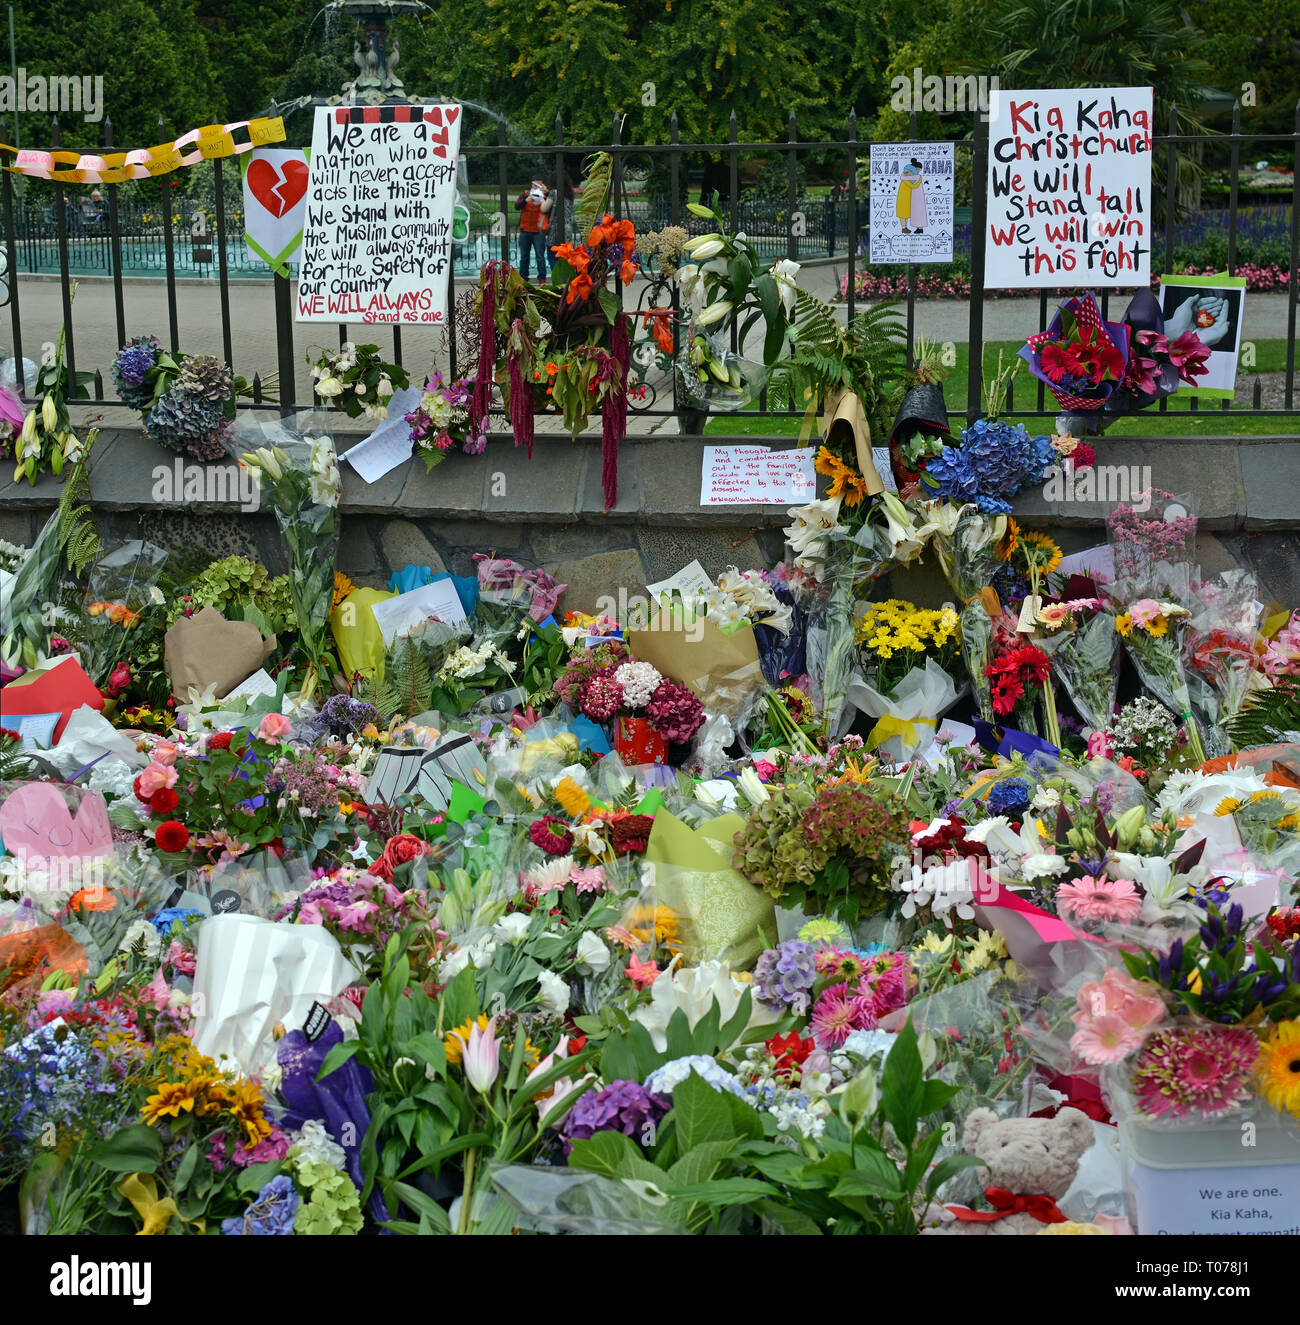 Christchurch, New Zealand - March 18, 2019; Christchurch Mosques Massacre - Messages of solidarity, remembrance; grief and commiseration to the families of the 50 dead. Credit: Nigel Spiers/Alamy Live News - Stock Image